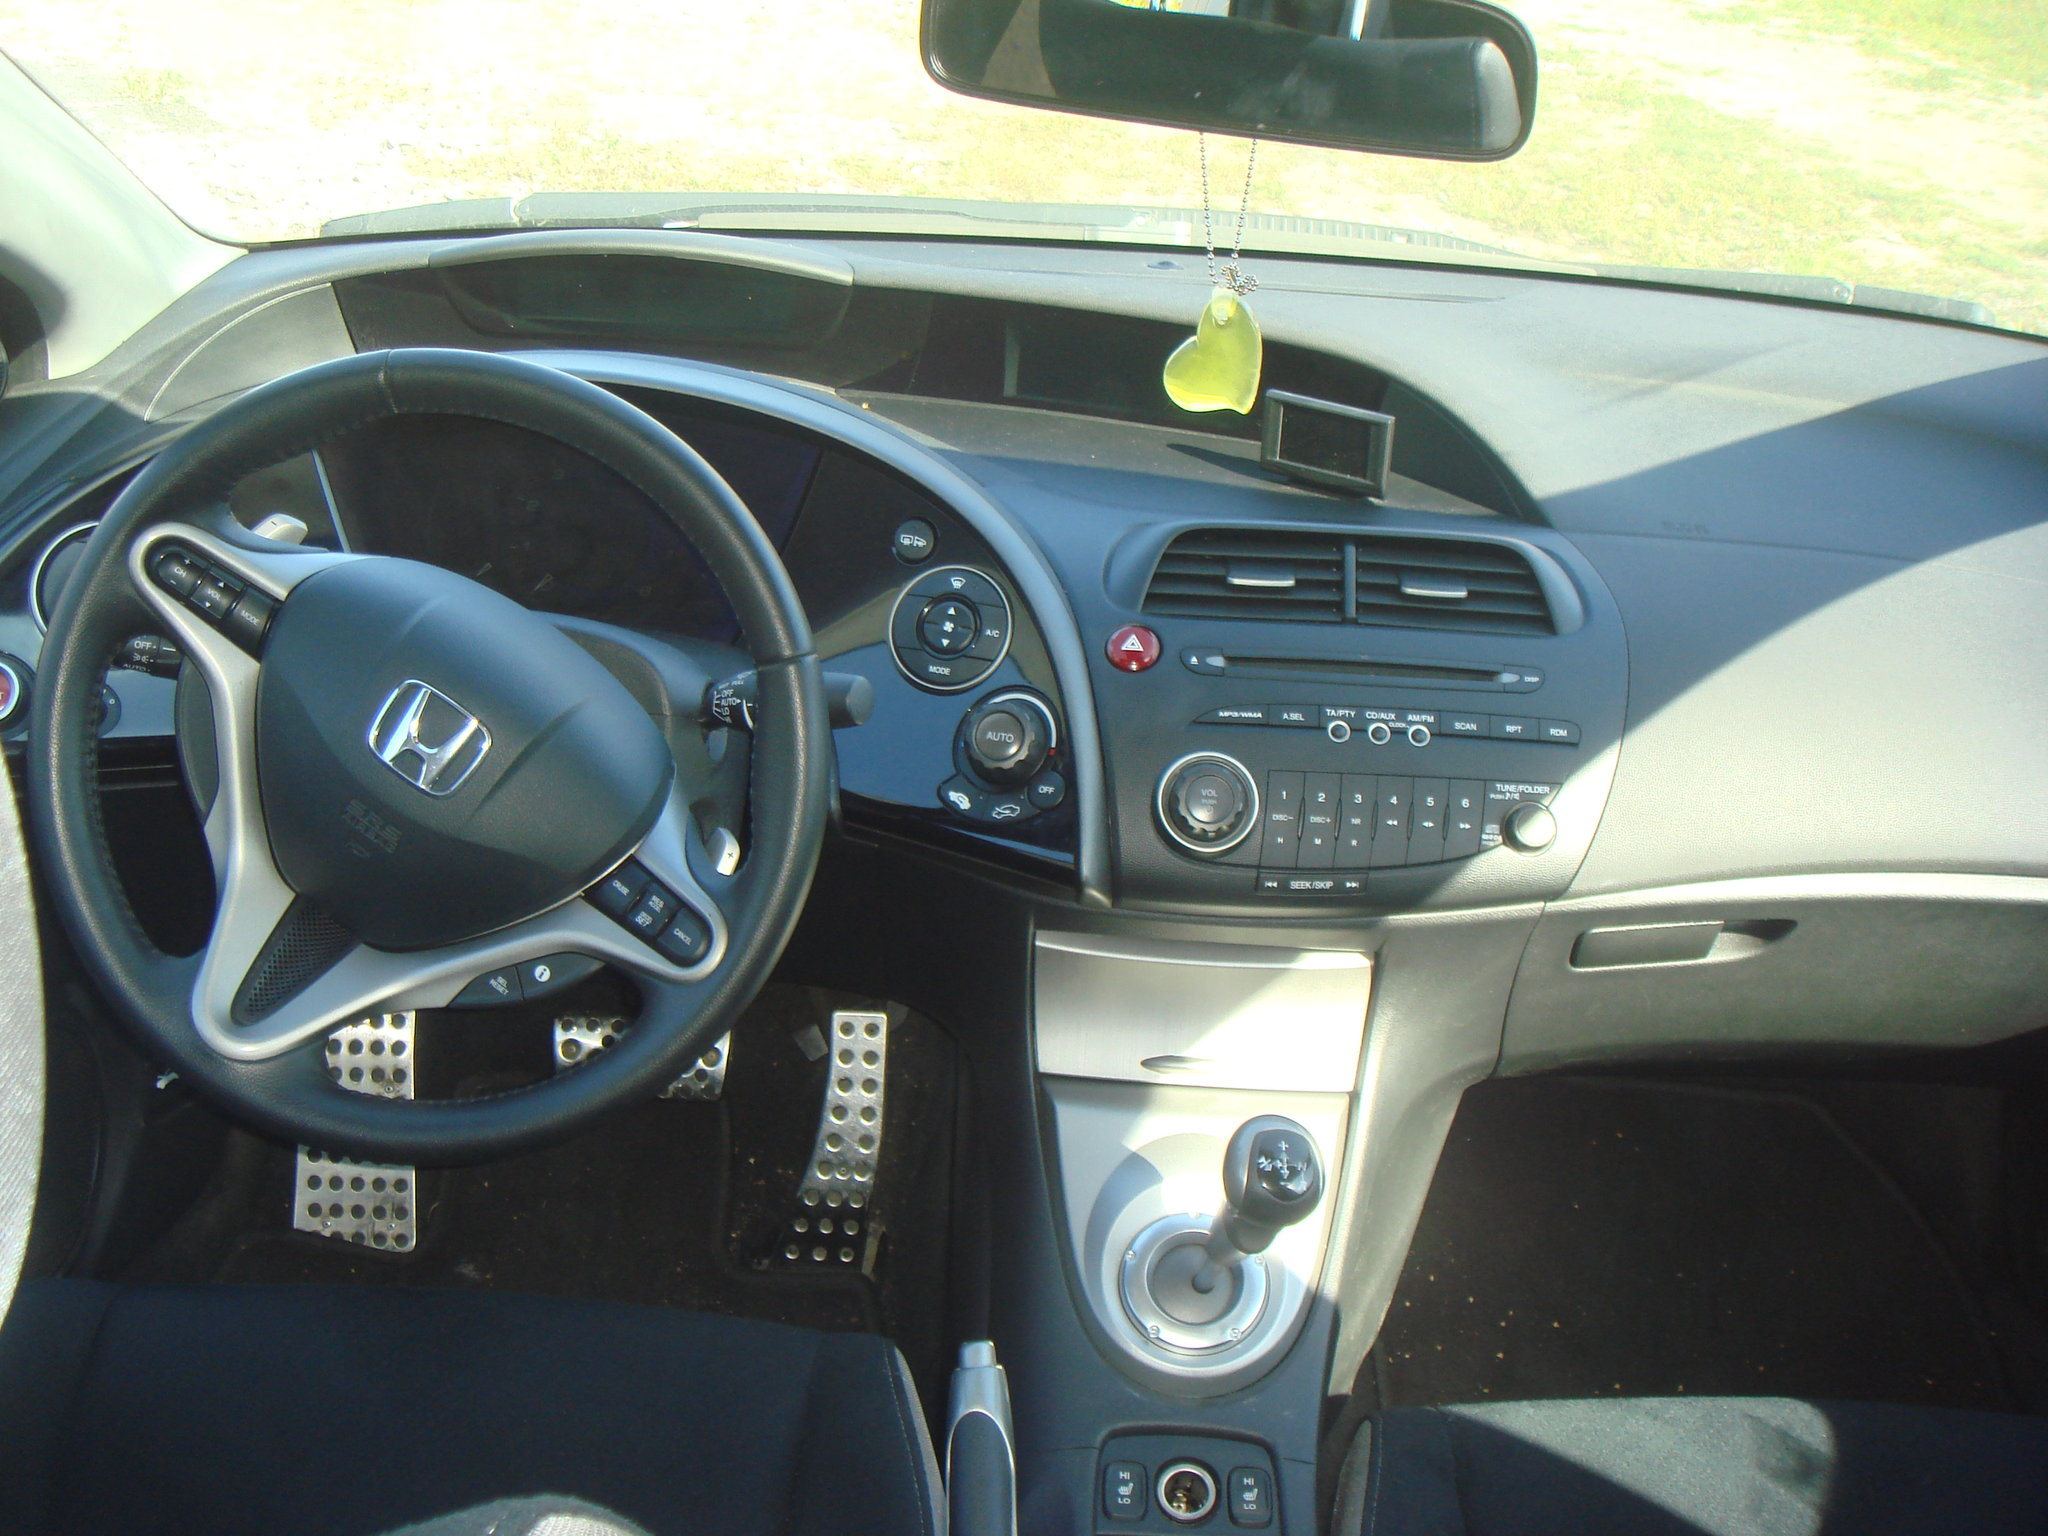 Honda Civic 4D VIII: 10 фото